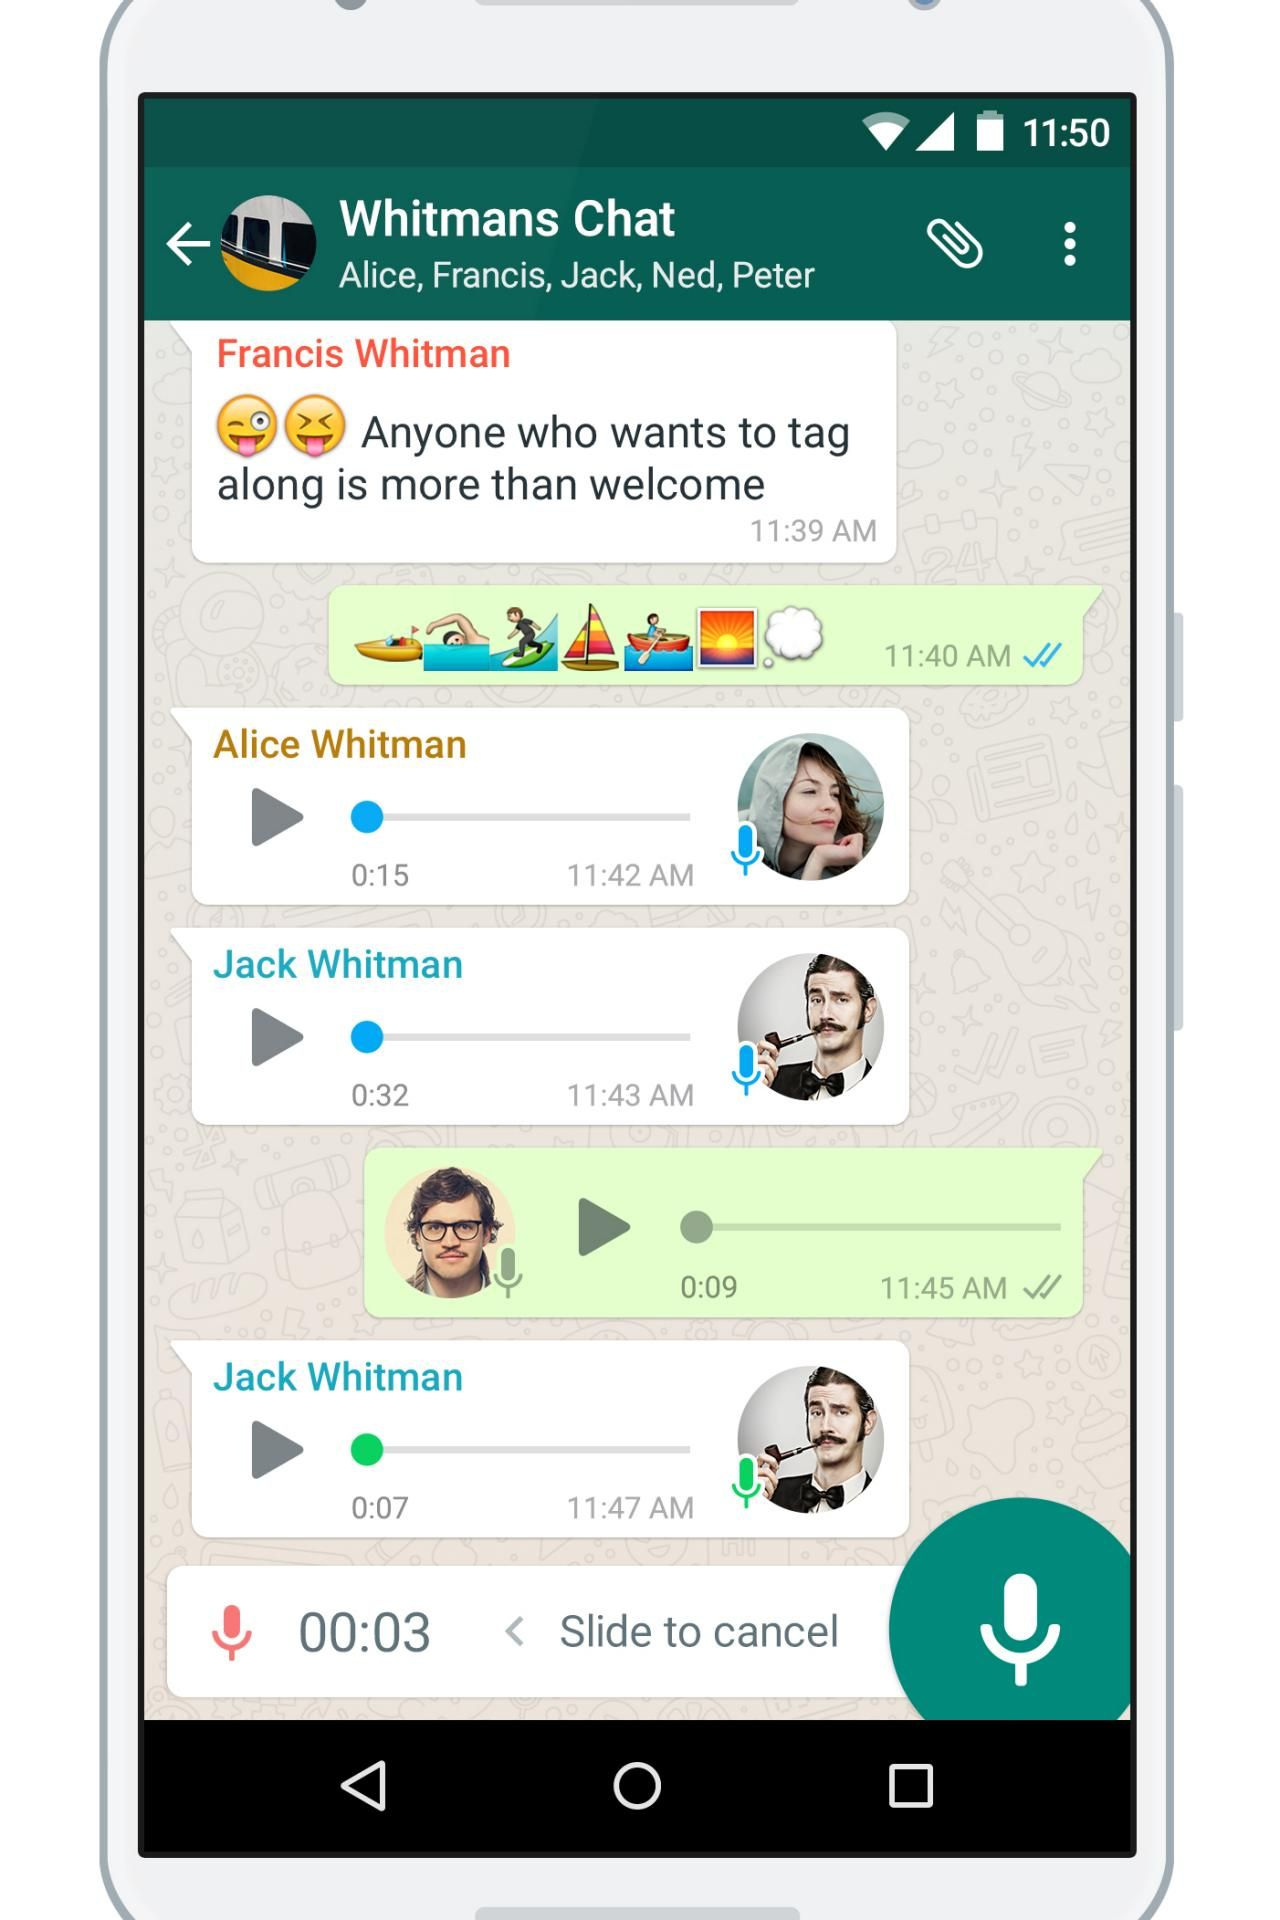 Send free Coco invitations by text message right from your